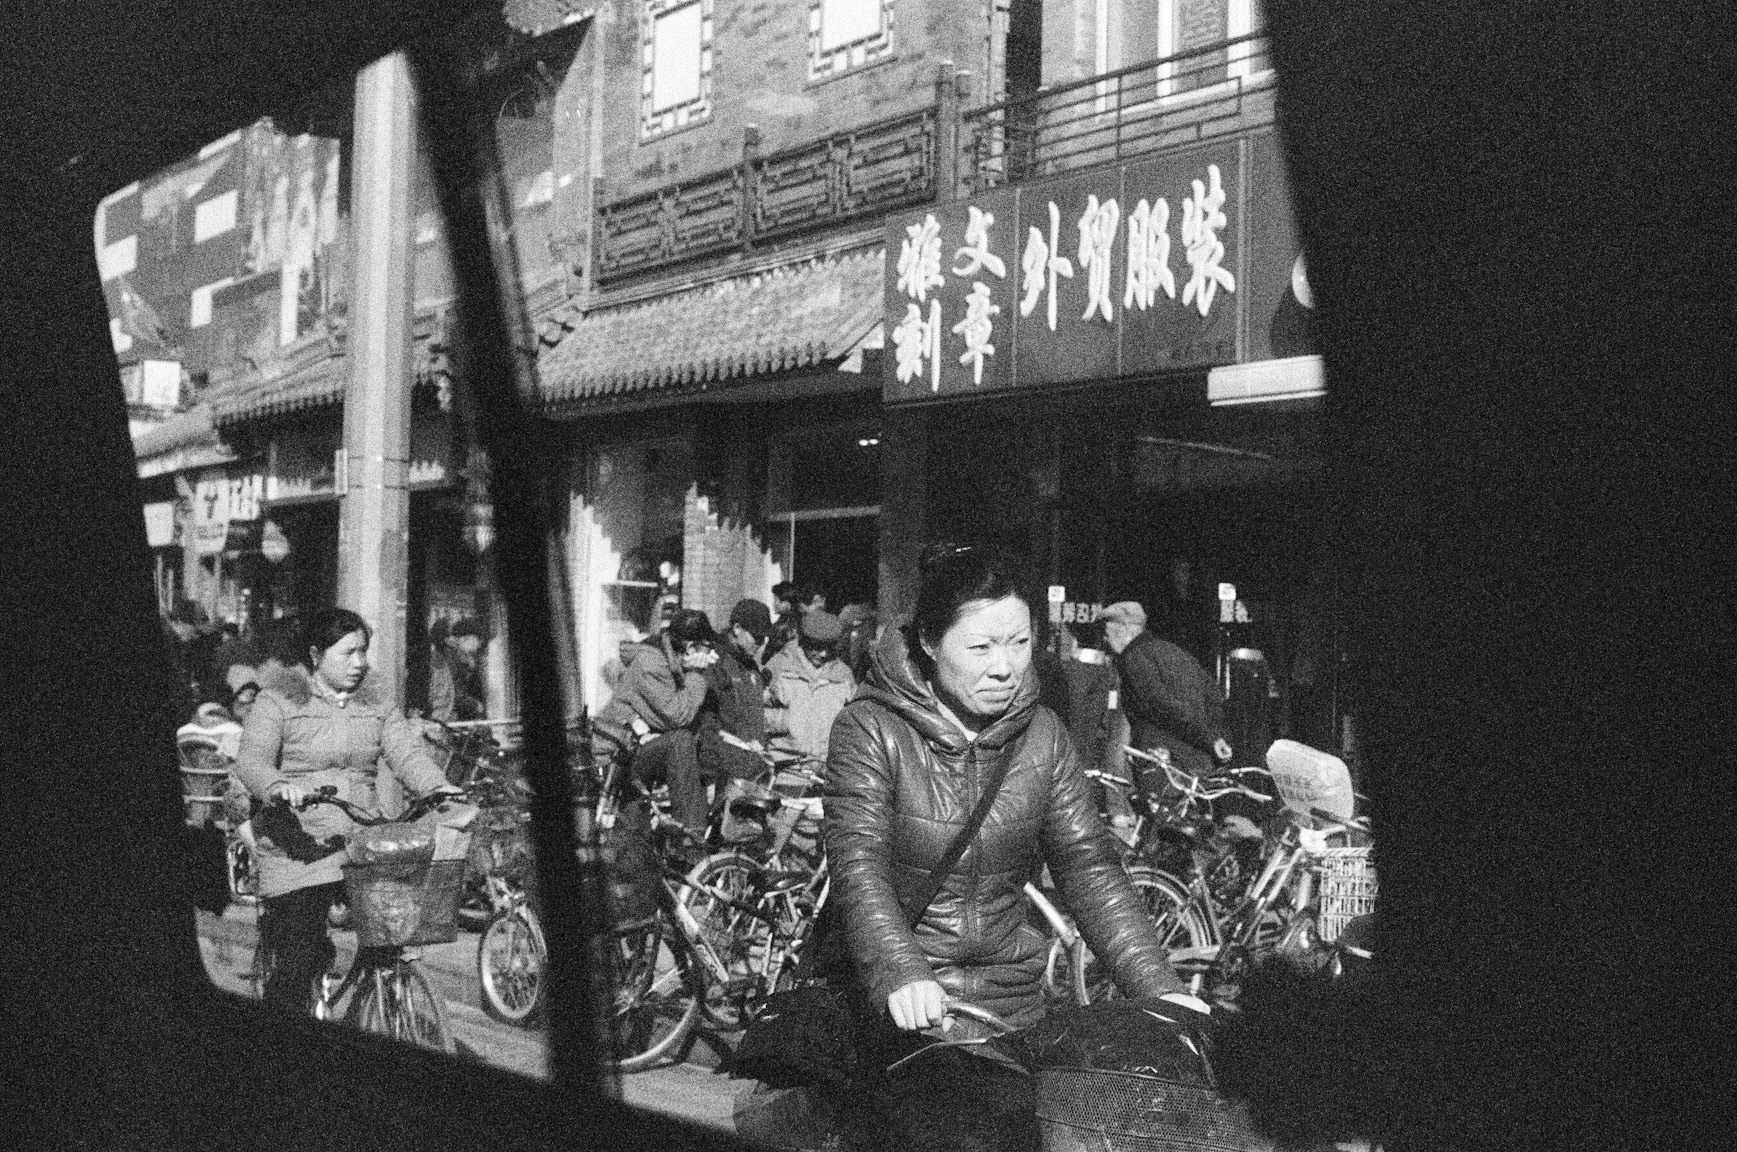 Lady on a bike, Beijing, China